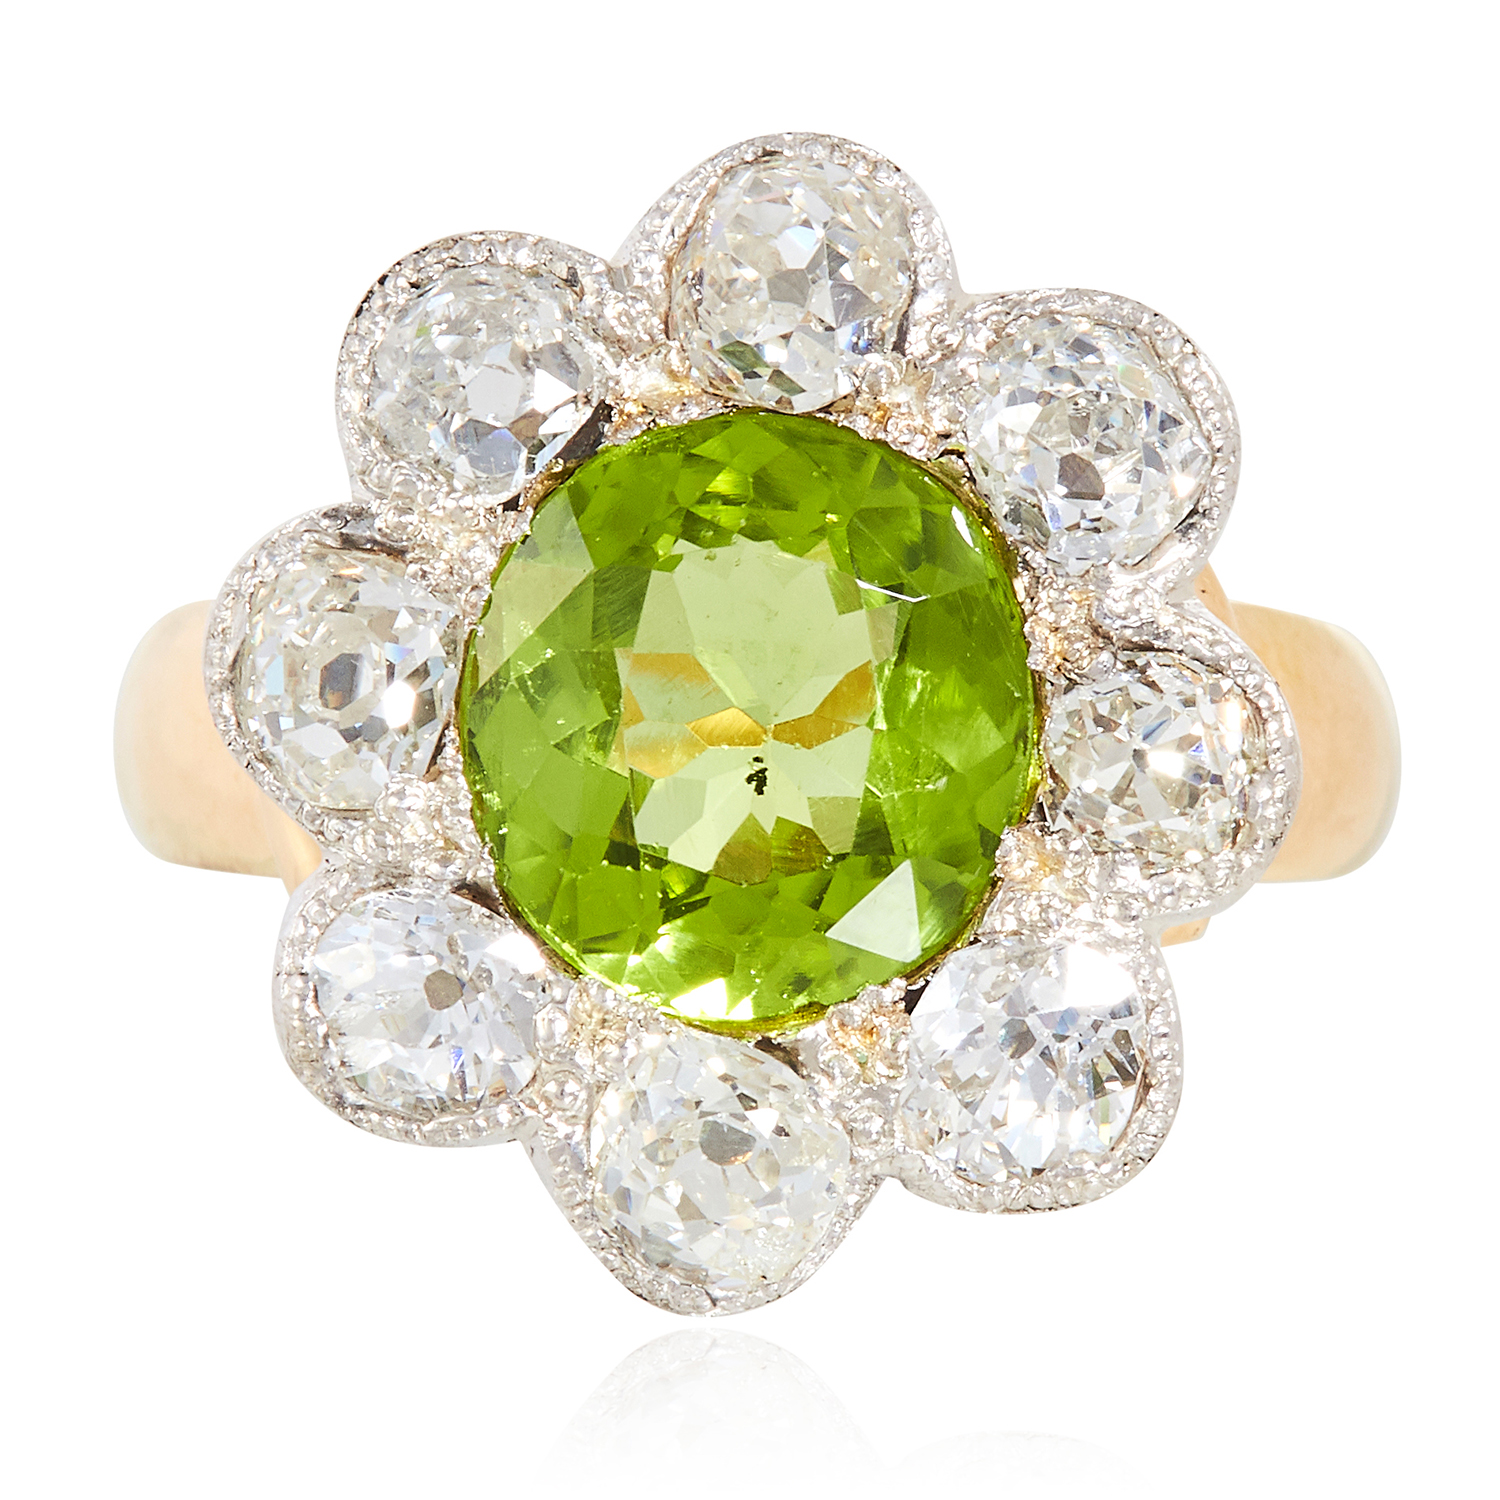 Los 14 - A PERIDOT AND DIAMOND CLUSTER RING in yellow gold, set with a round cut peridot of approximately 2.